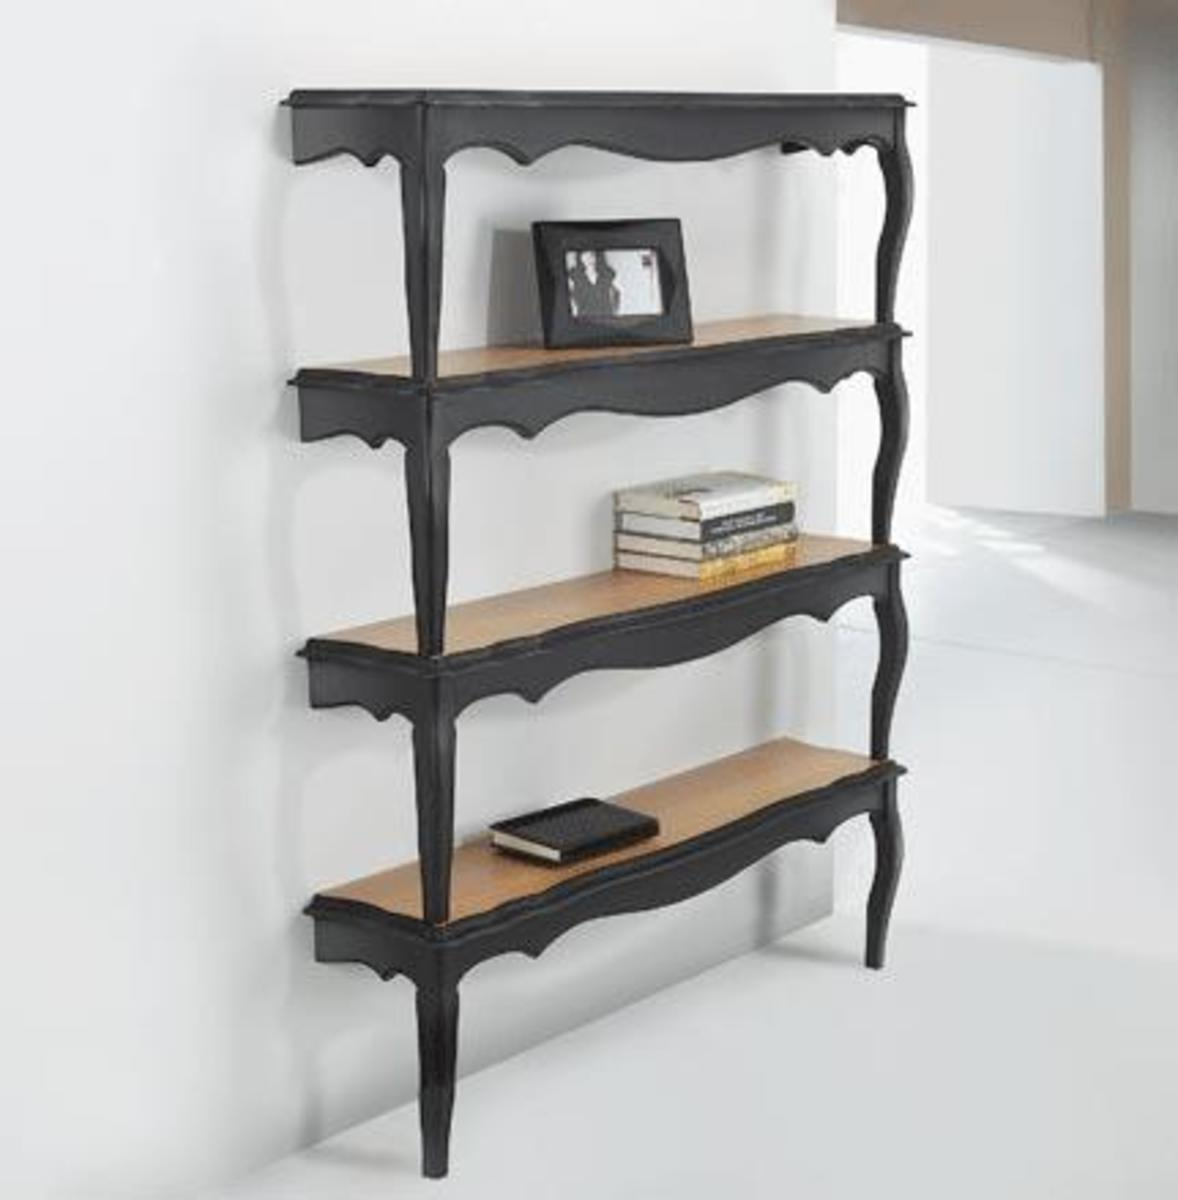 These upcycled tables have become shelves! A very cool upcycled furniture idea!